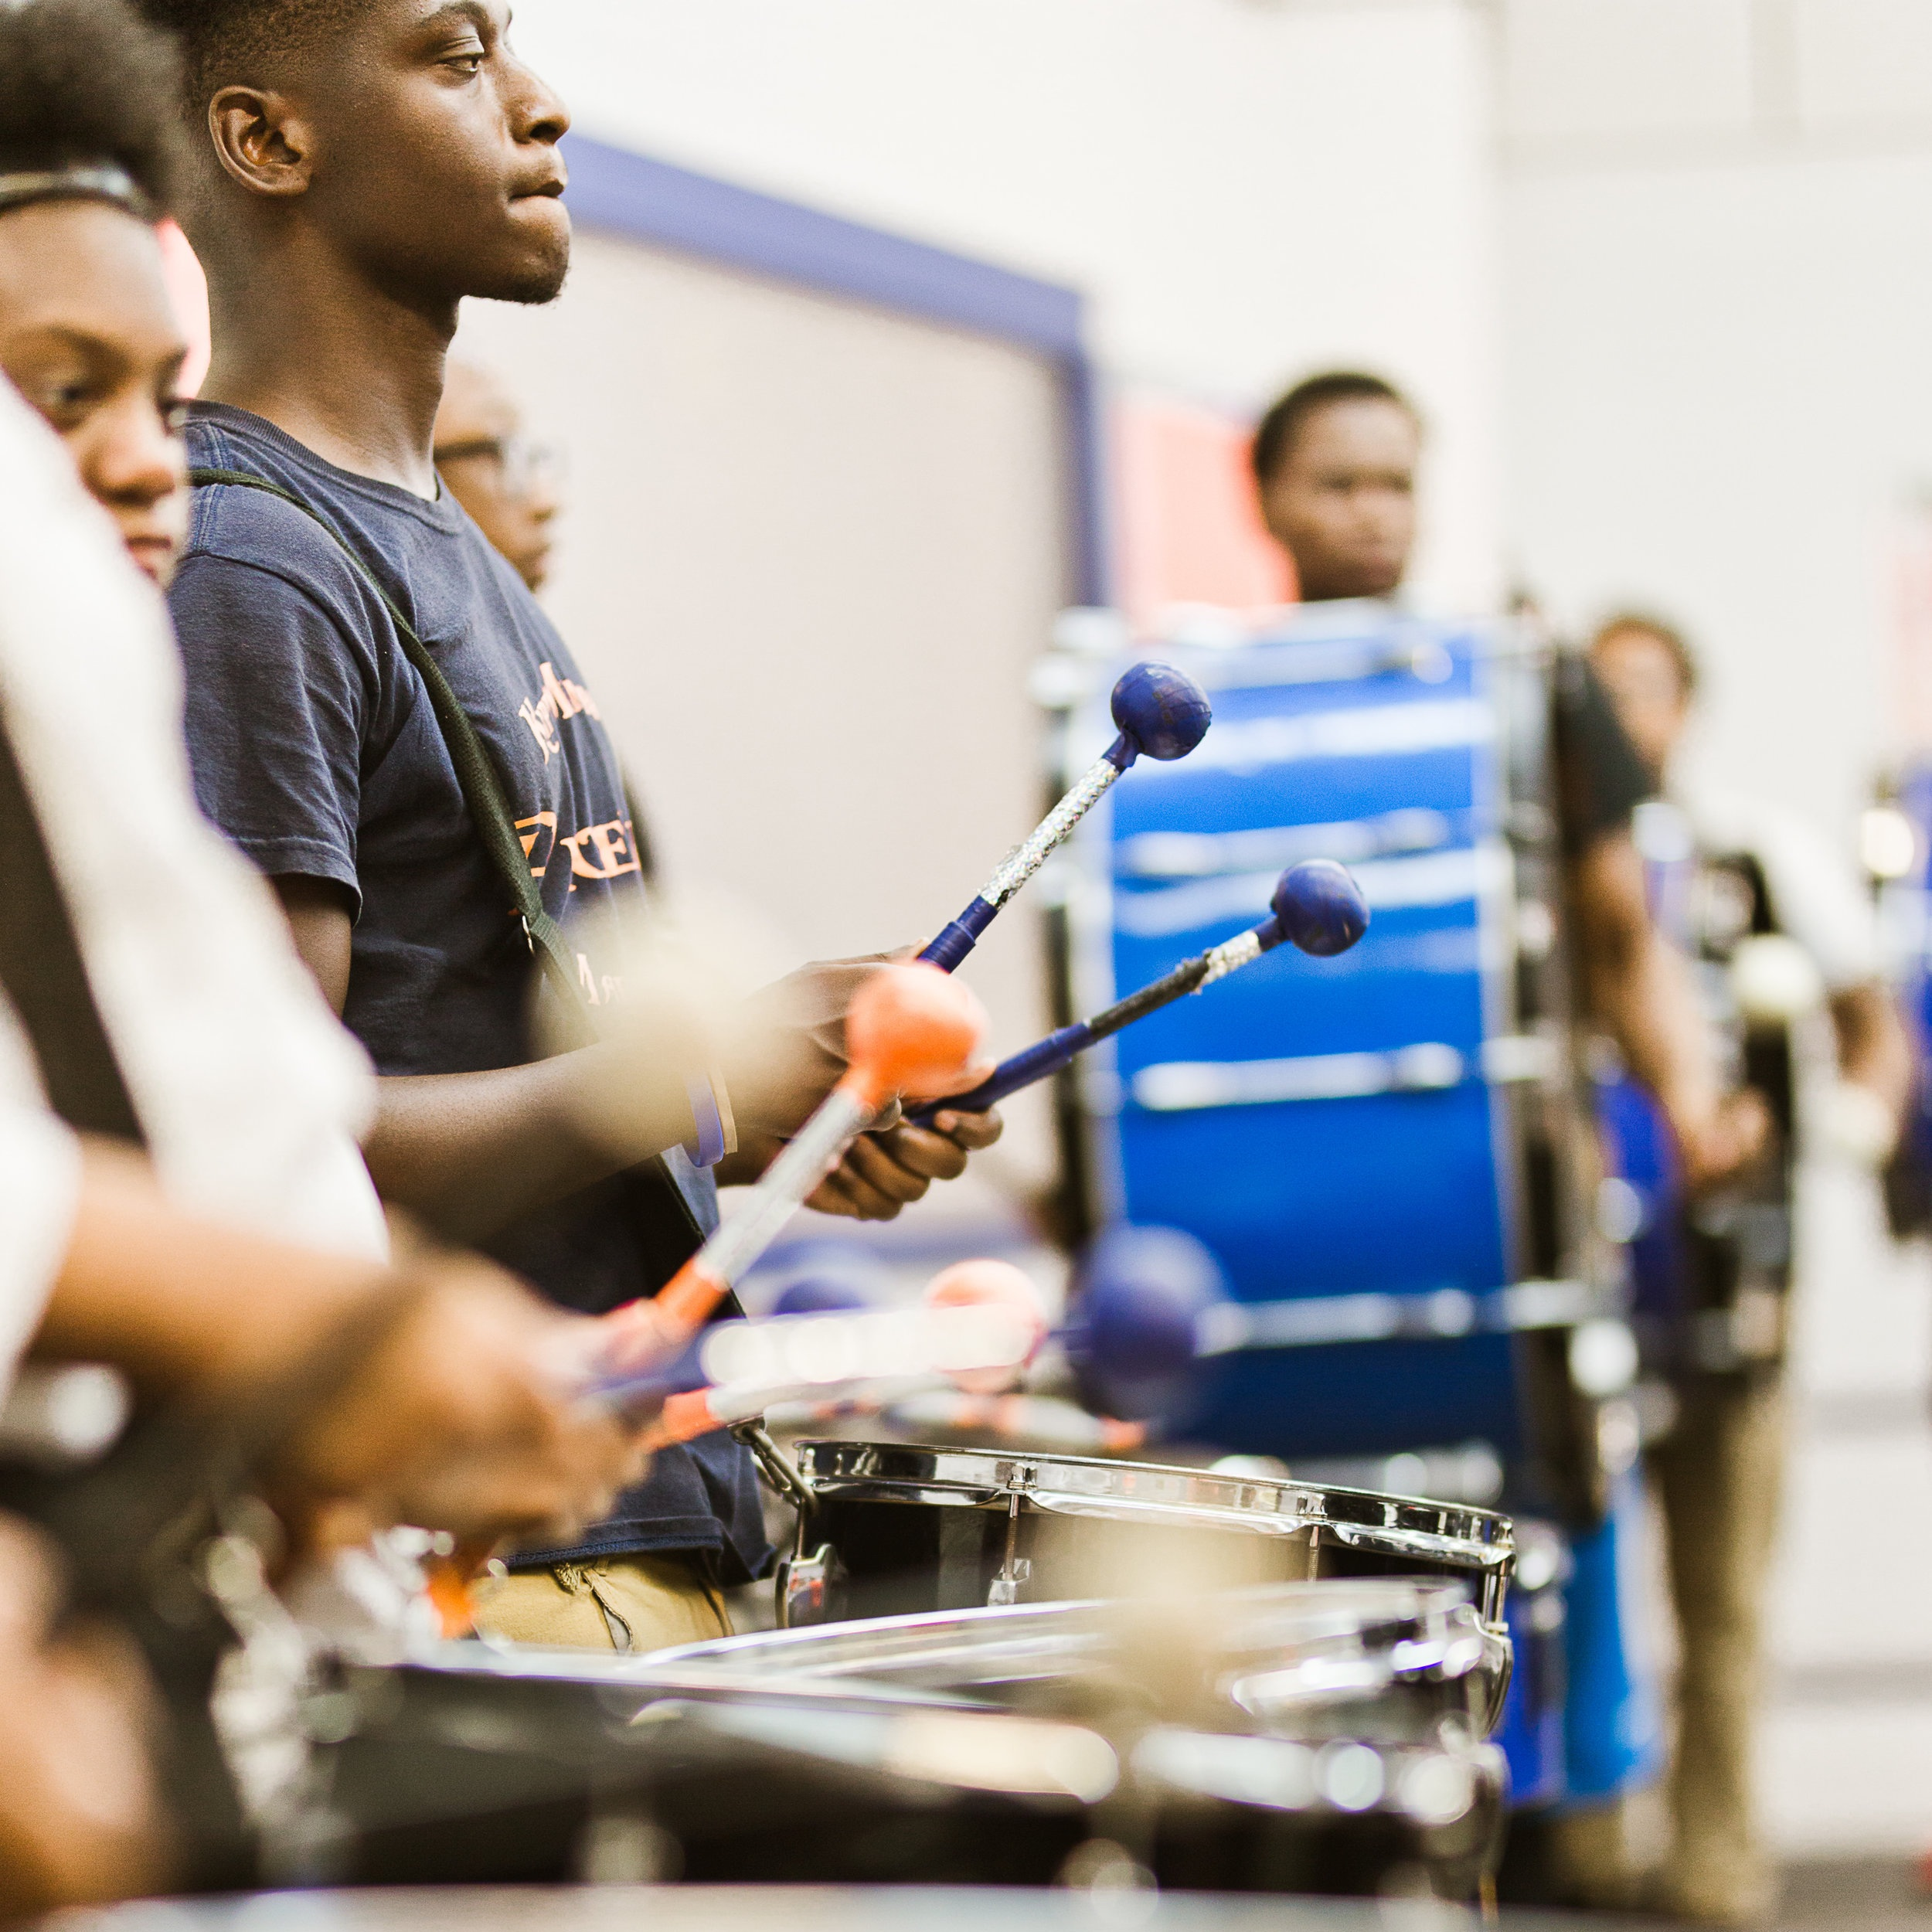 Extracurriculars - Click here to see the electives and extracurricular activities offered at KIPP Memphis.